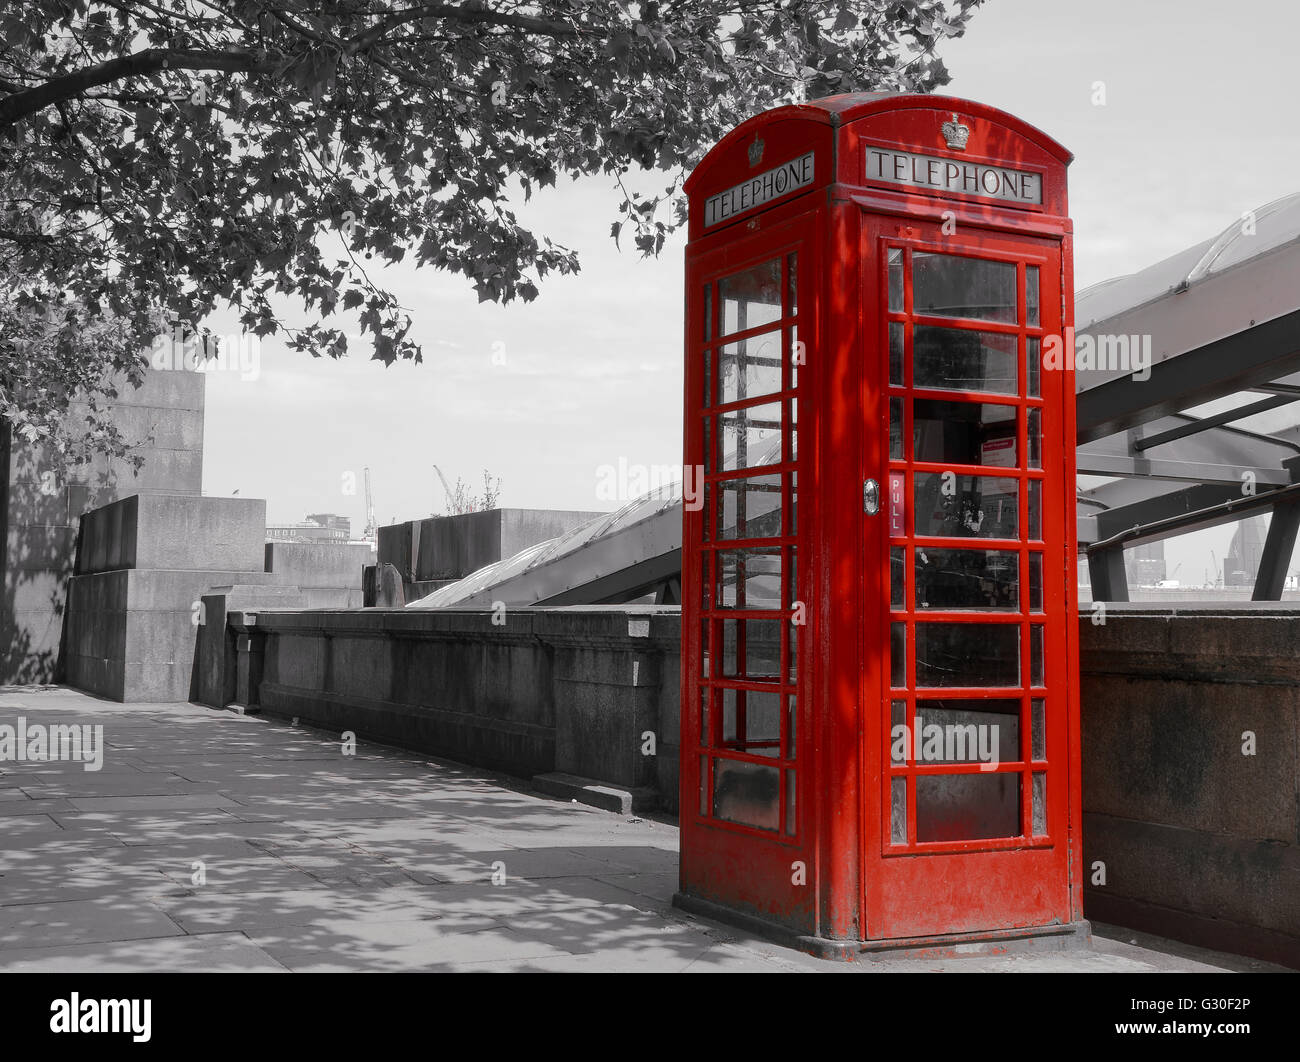 Red telephone box in street with historical architecture in London. - Stock Image